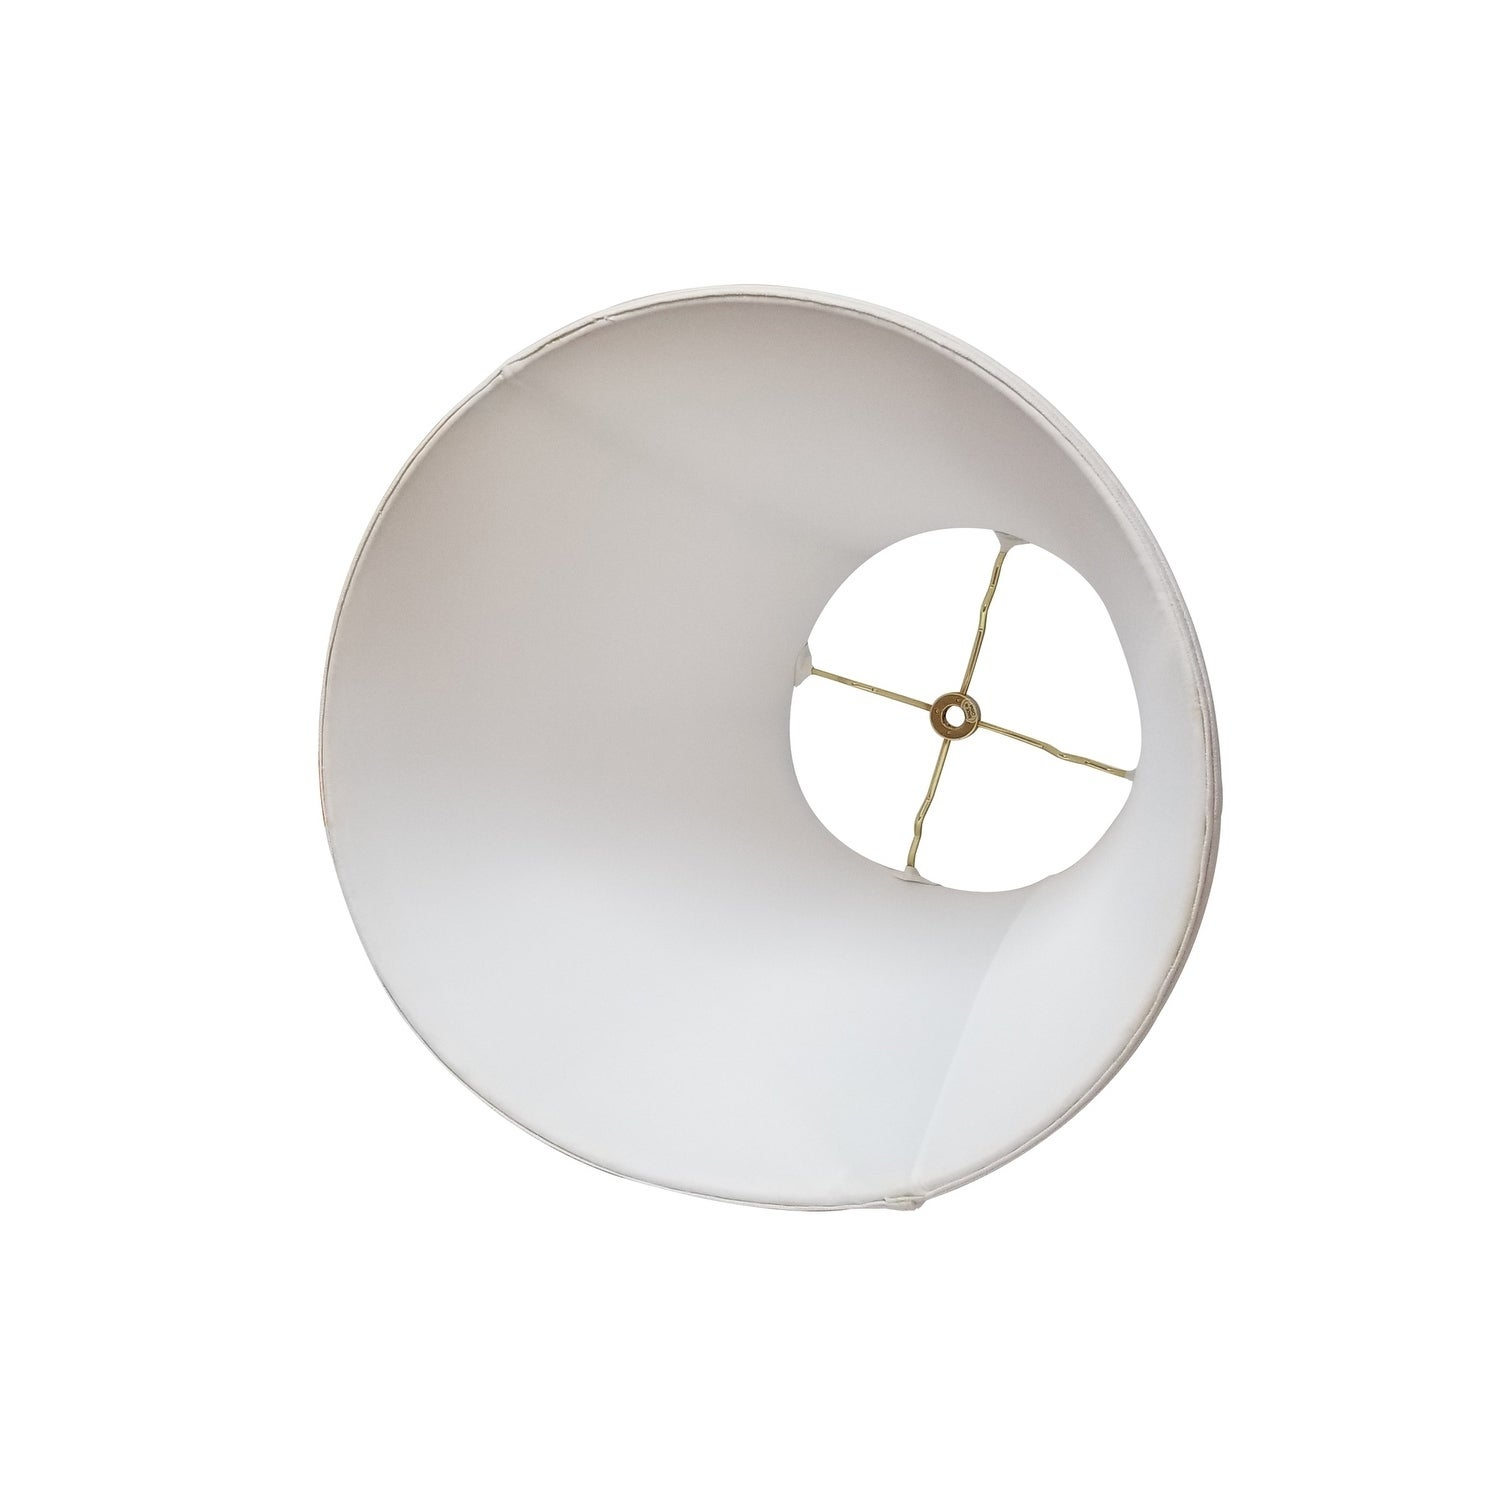 Royal Designs Deep Empire Linen White Lamp Shade 11 X 22 X 16 On Sale Overstock 14800918